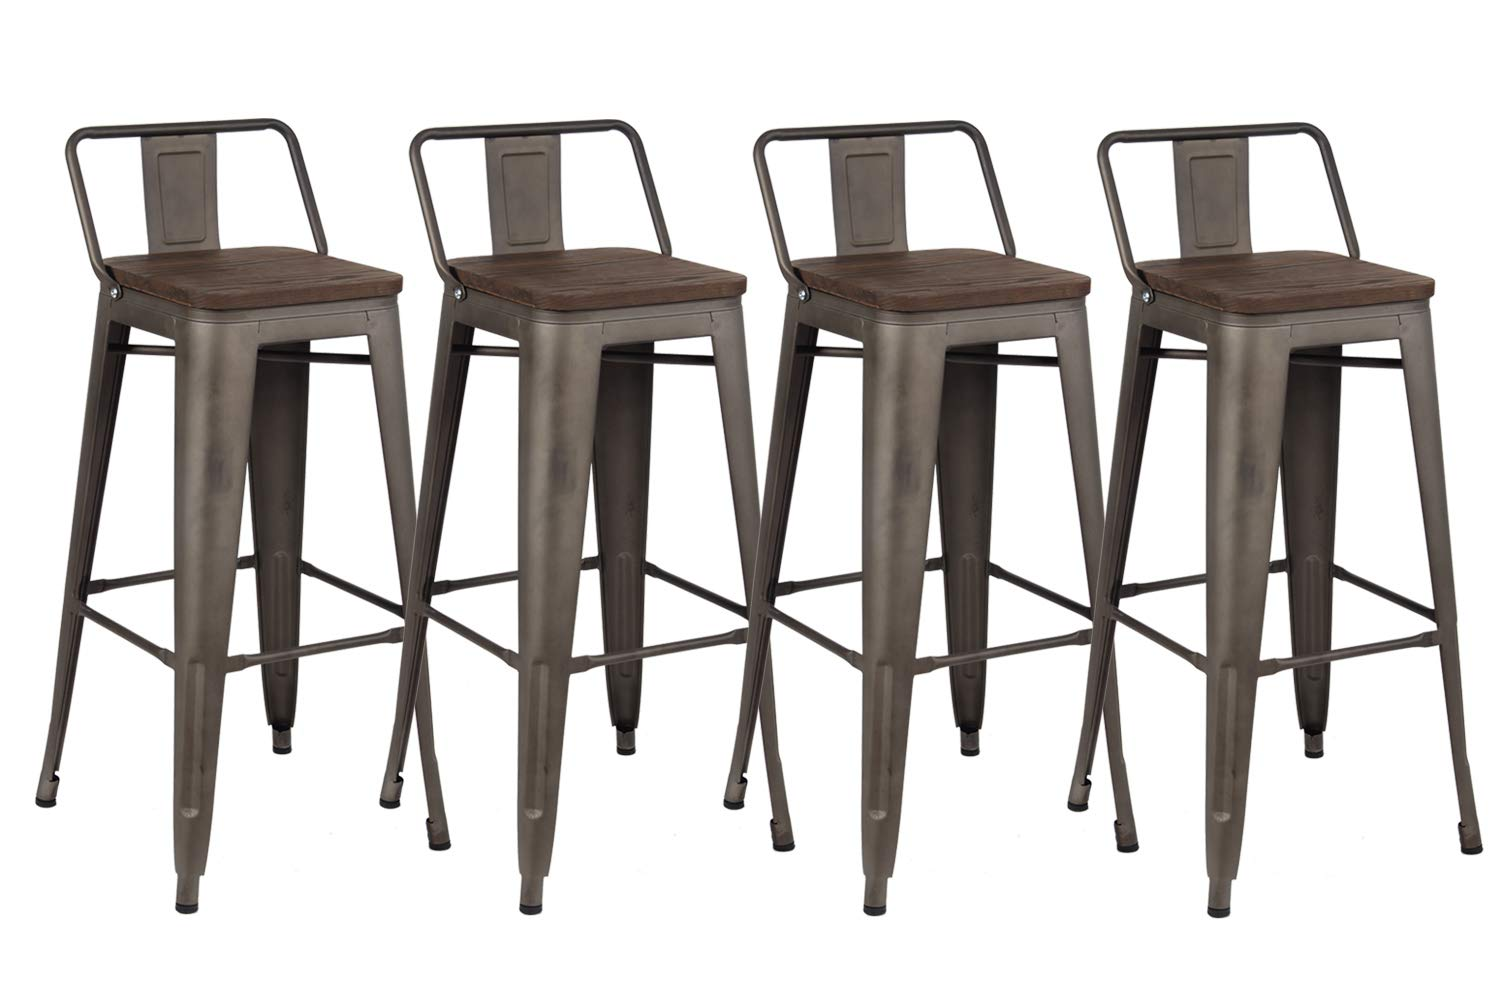 Kmax Industrial Metal Bar Stools Set – Height Bar Stools Chairs with Backs Indoor Outdoor, 30 , Set of 4, Gun